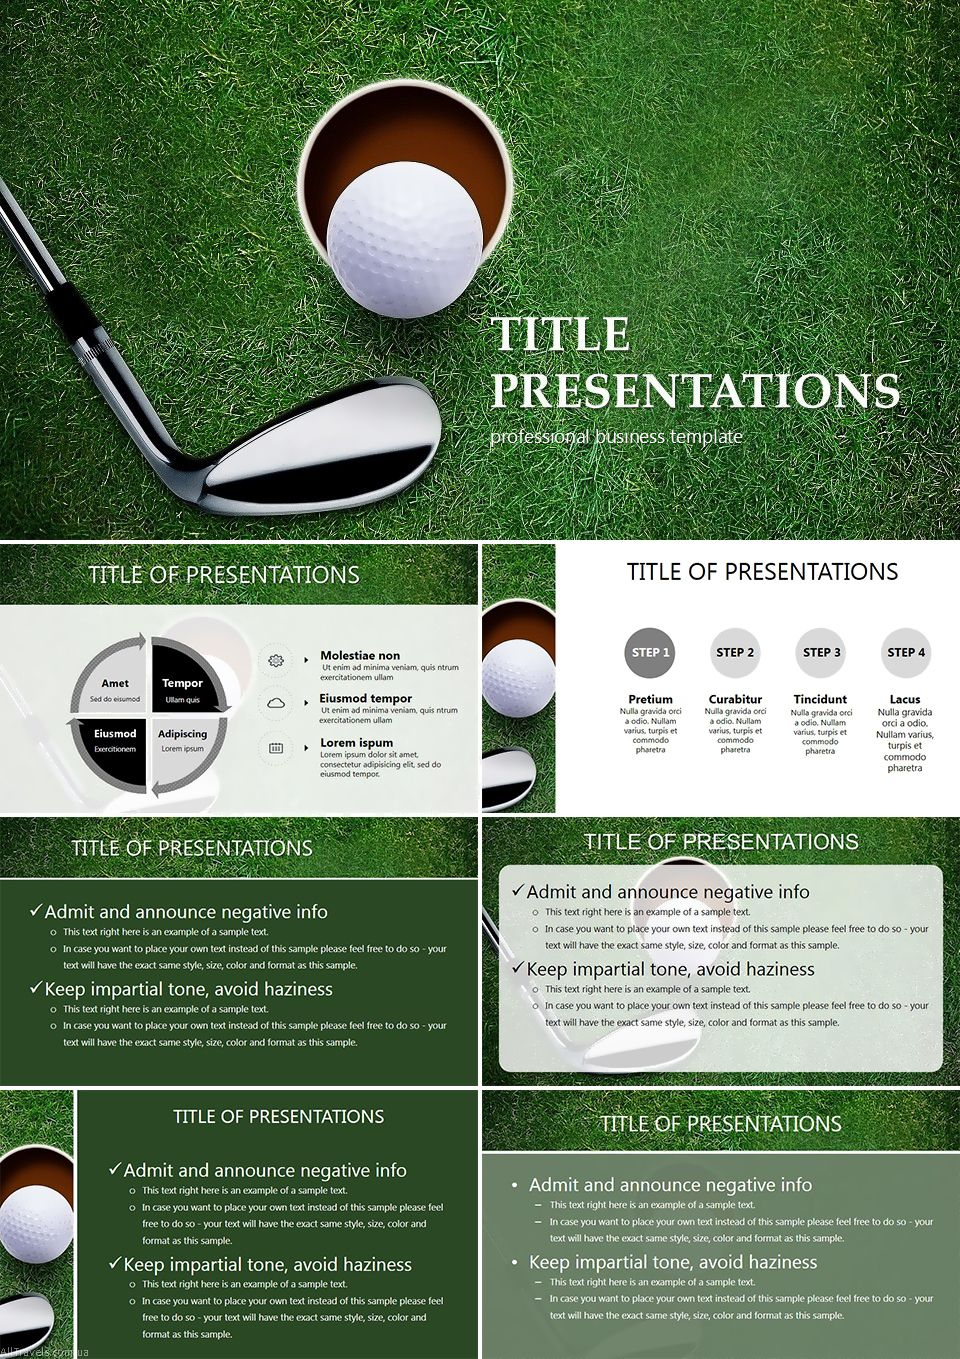 rules of the games - golf powerpoint templates | powerpoint, Modern powerpoint